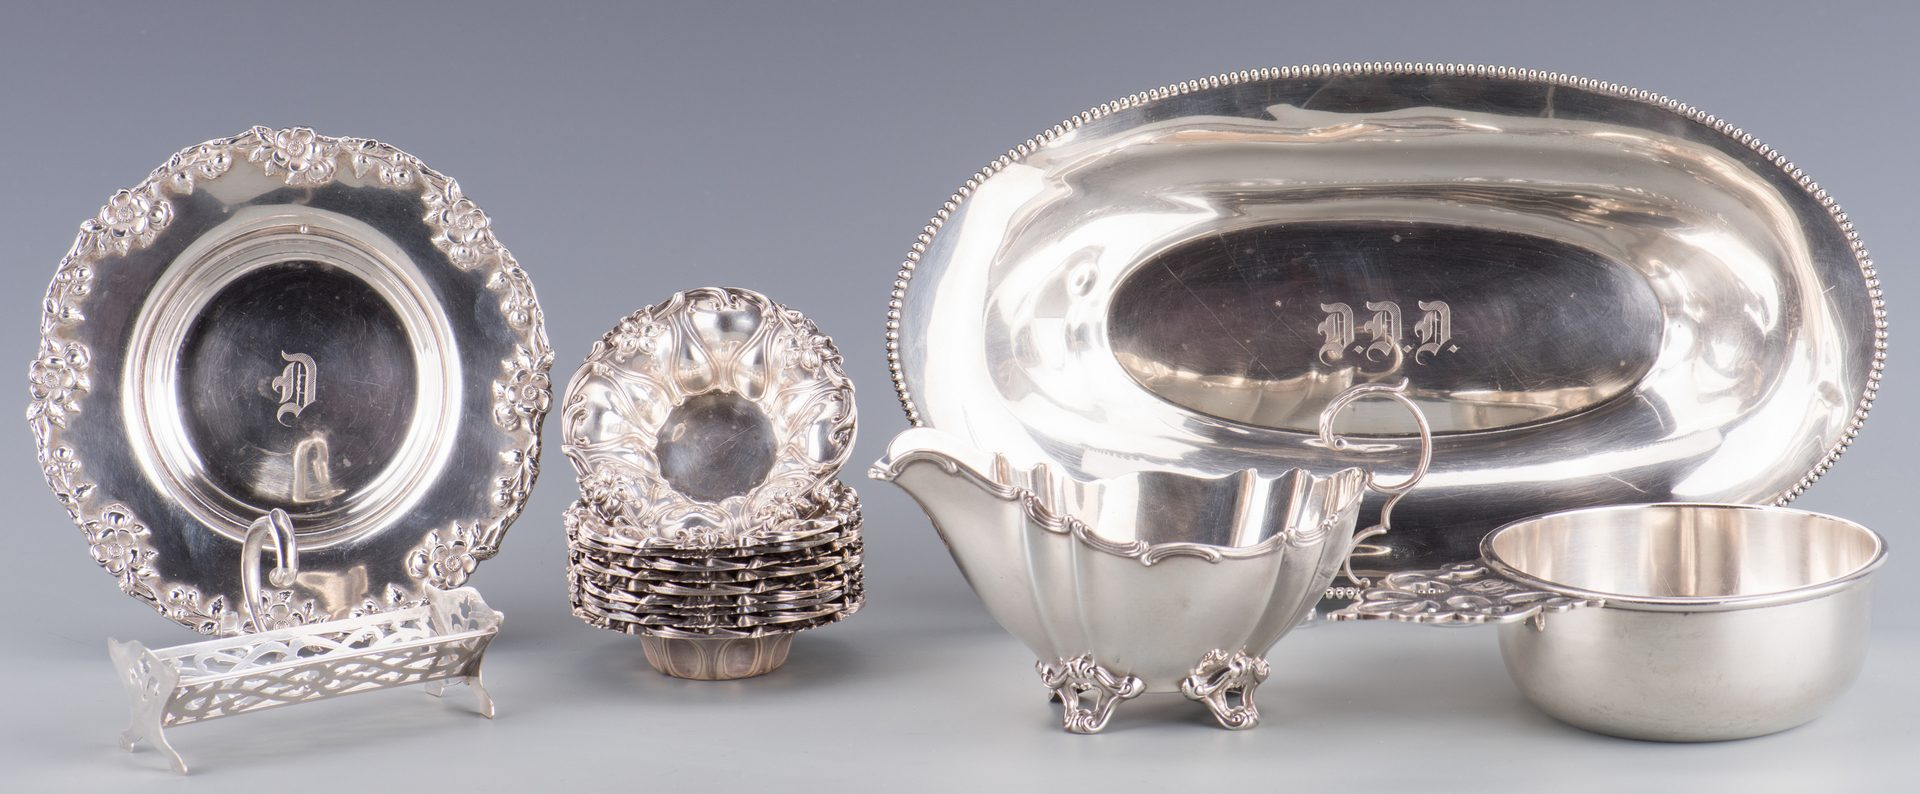 Lot 546: Mixed Sterling Silver Hollowware, 16 pcs